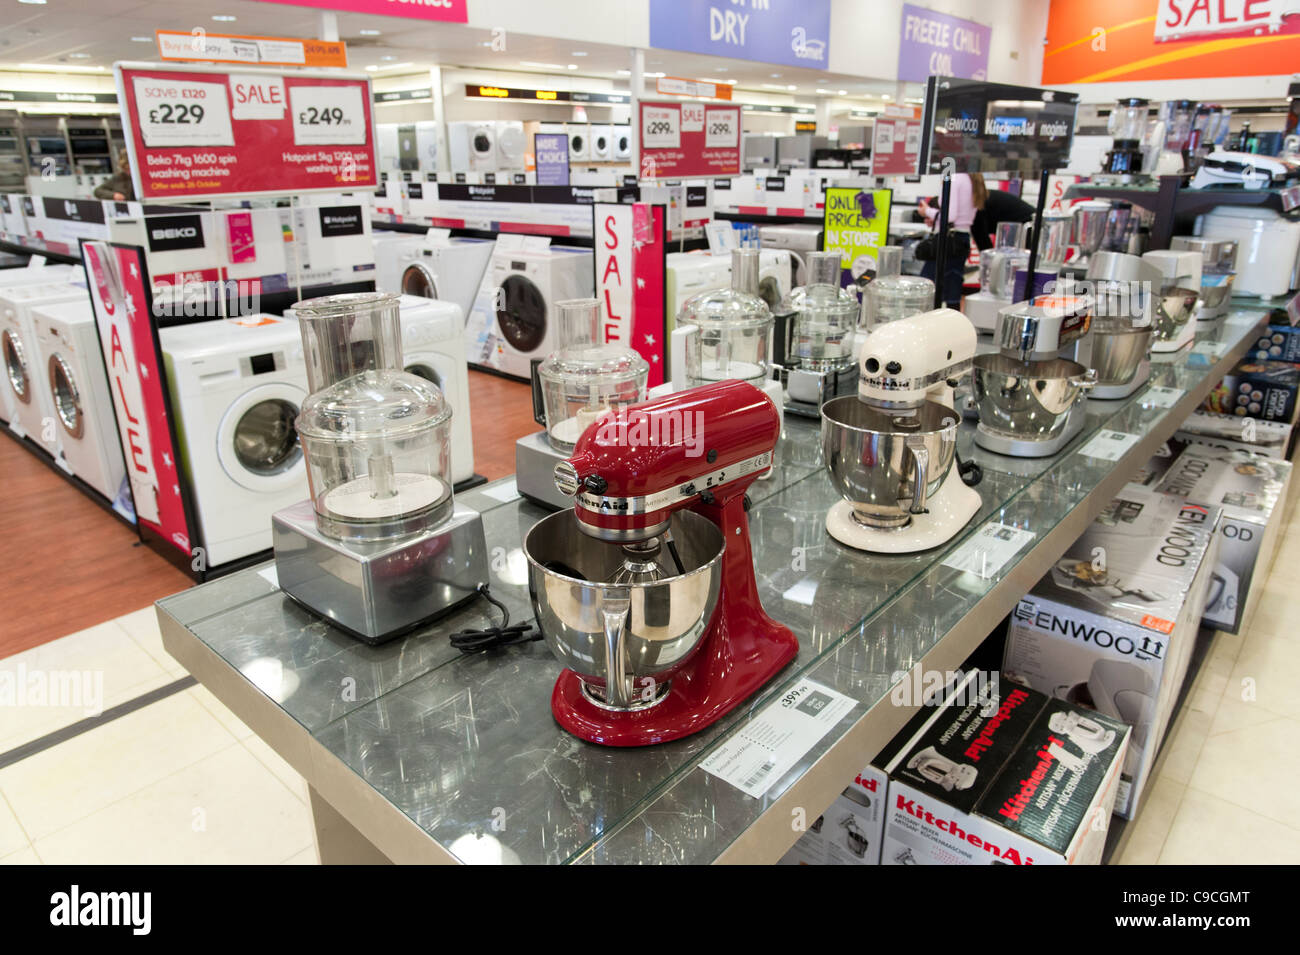 Uncategorized Cheap Kitchen Appliances Uk electrical kitchen appliances in comet store london england uk uk